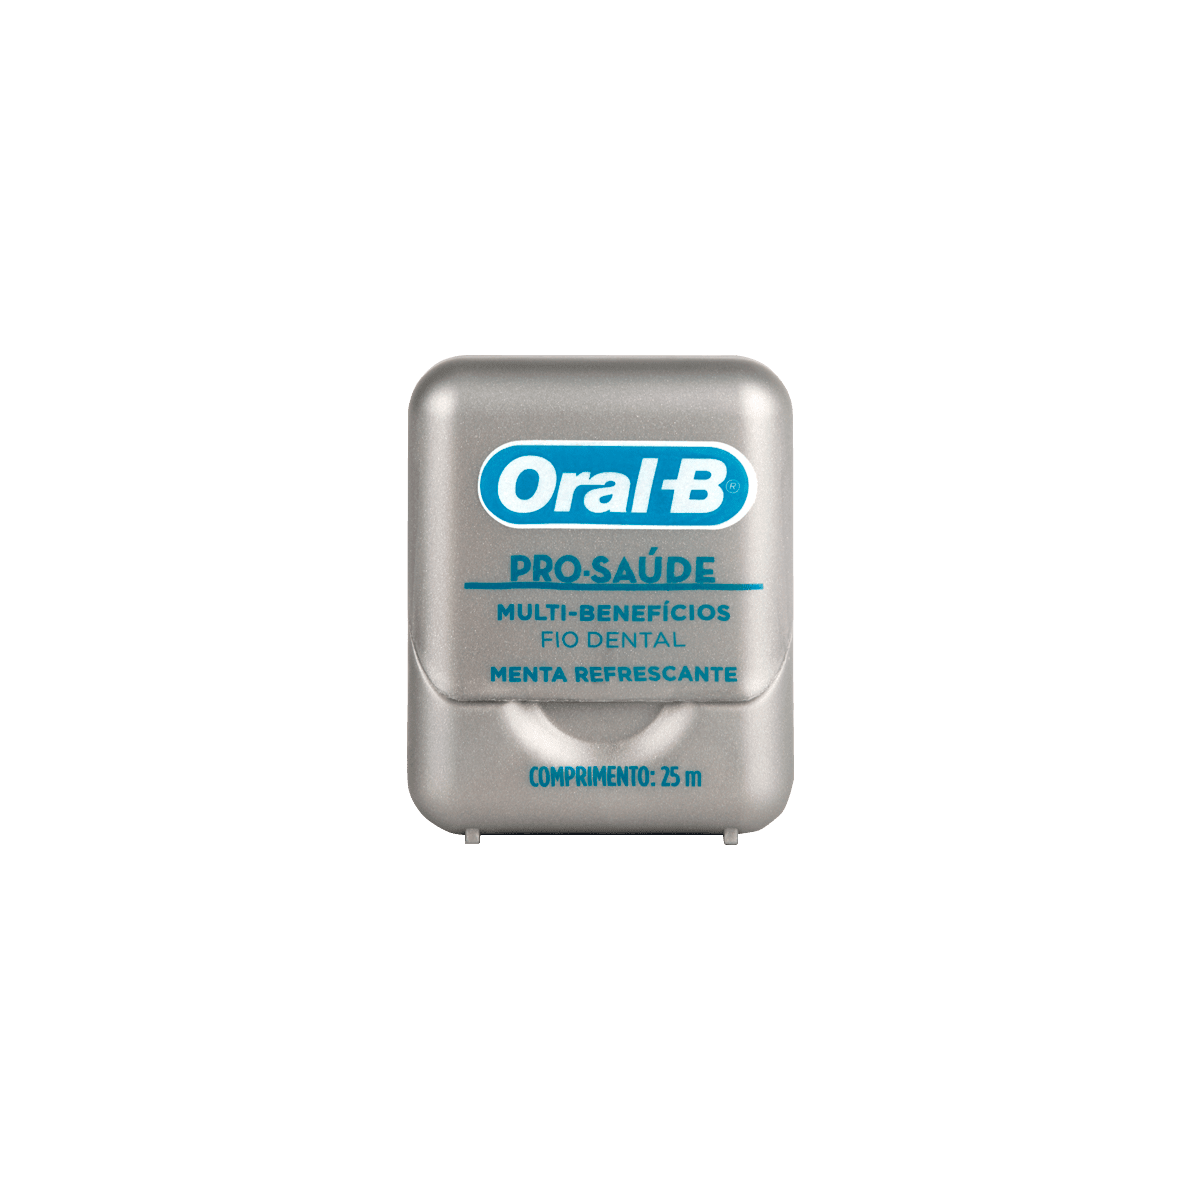 FioDental_OralB_ProSaudeMultiBeneficios